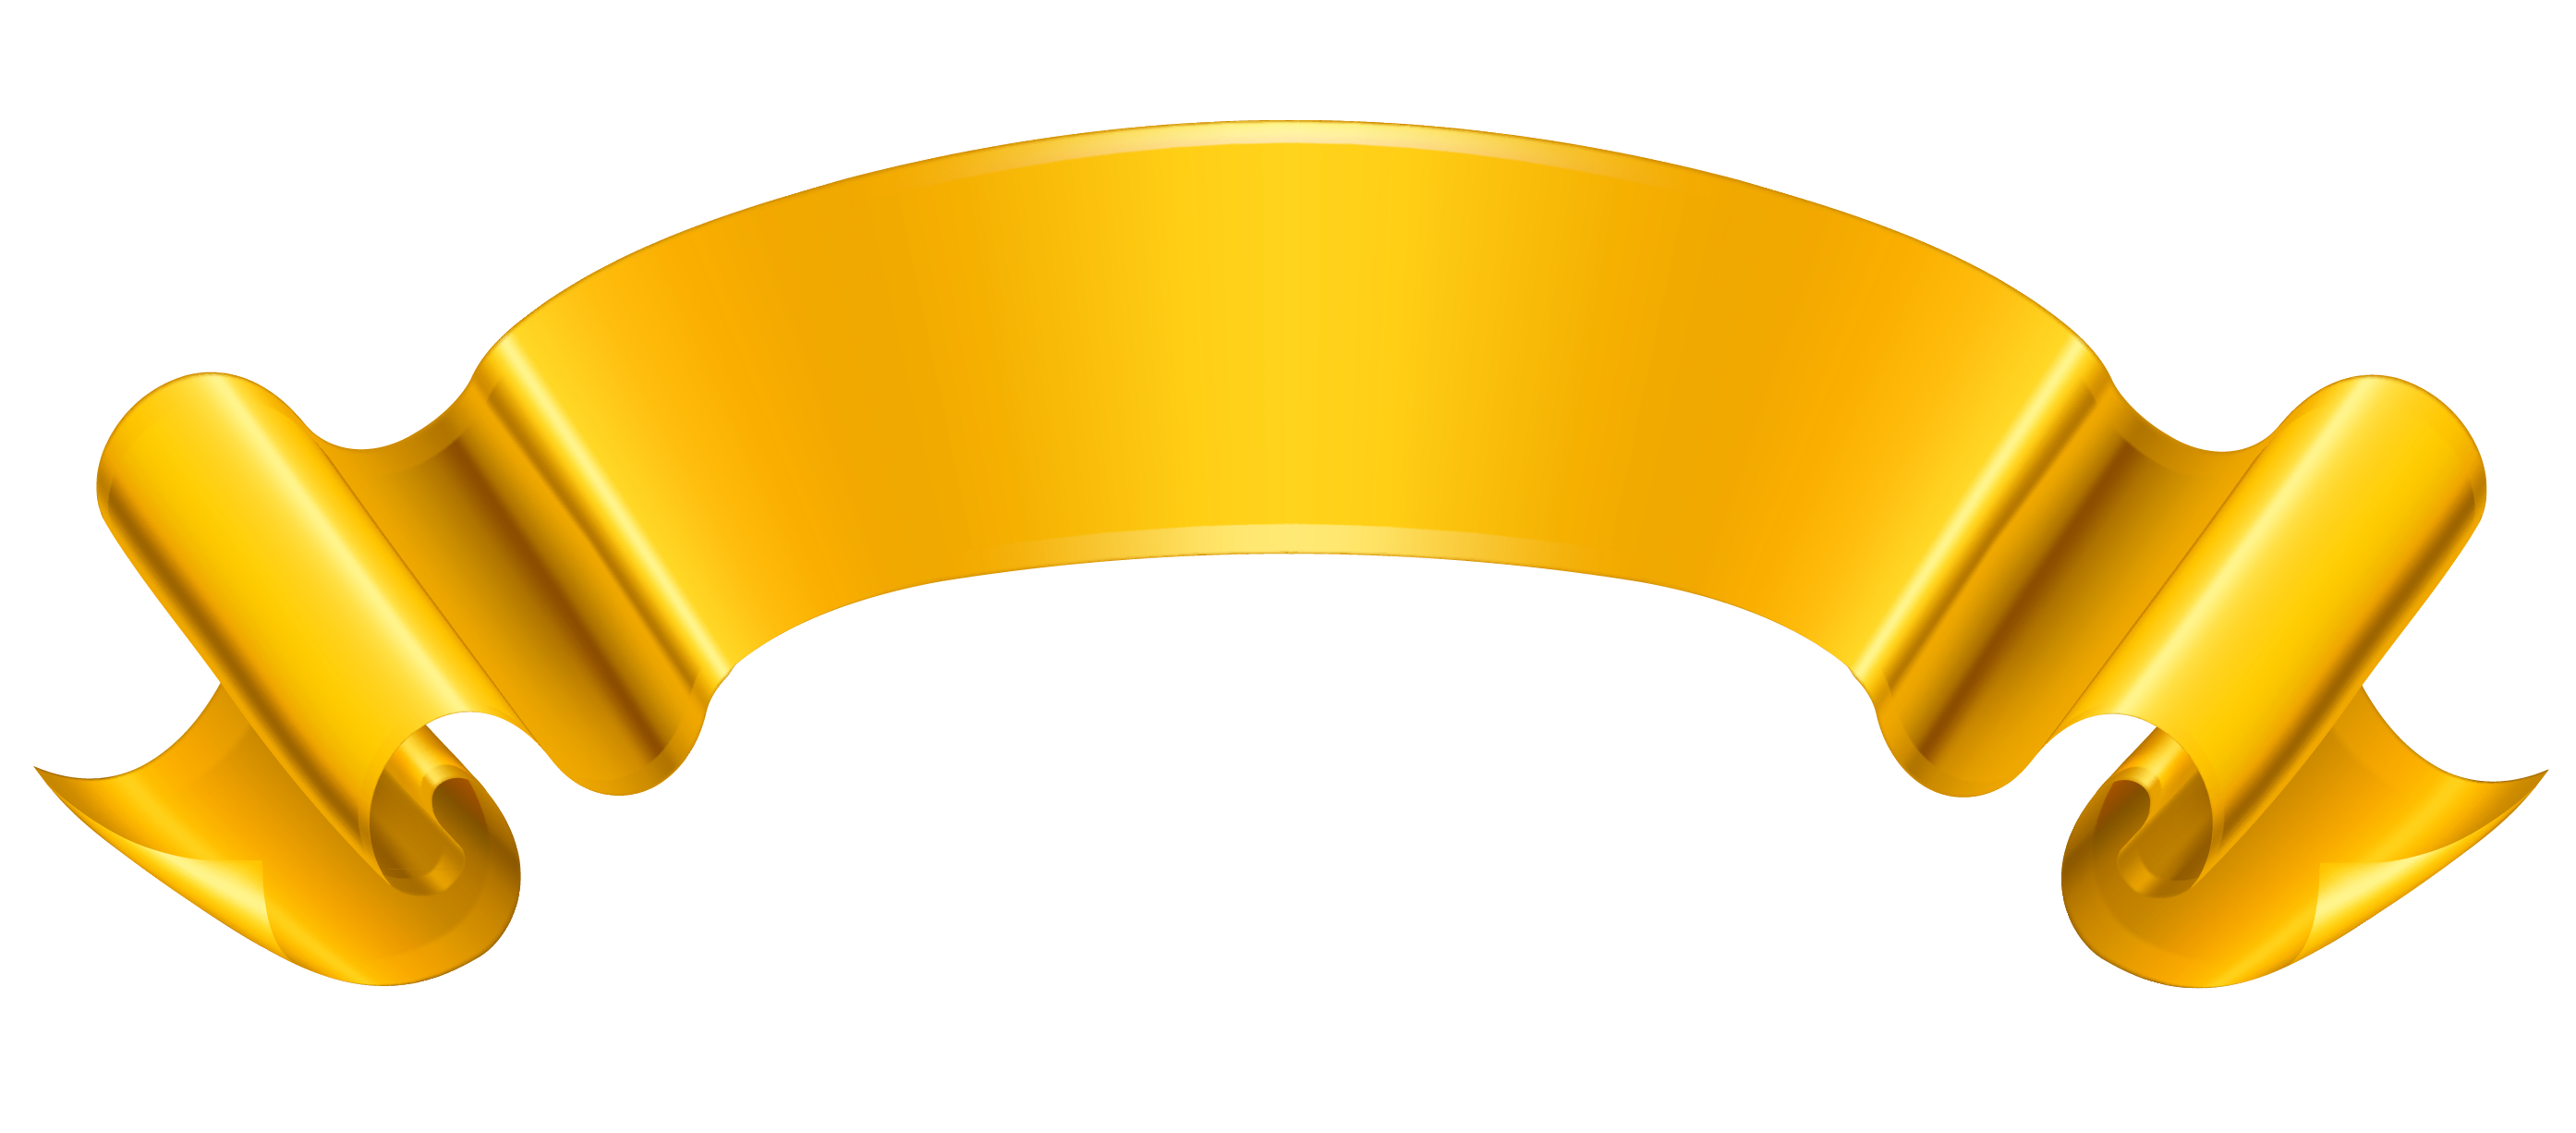 Gold, Yellow, Banner Png 6458